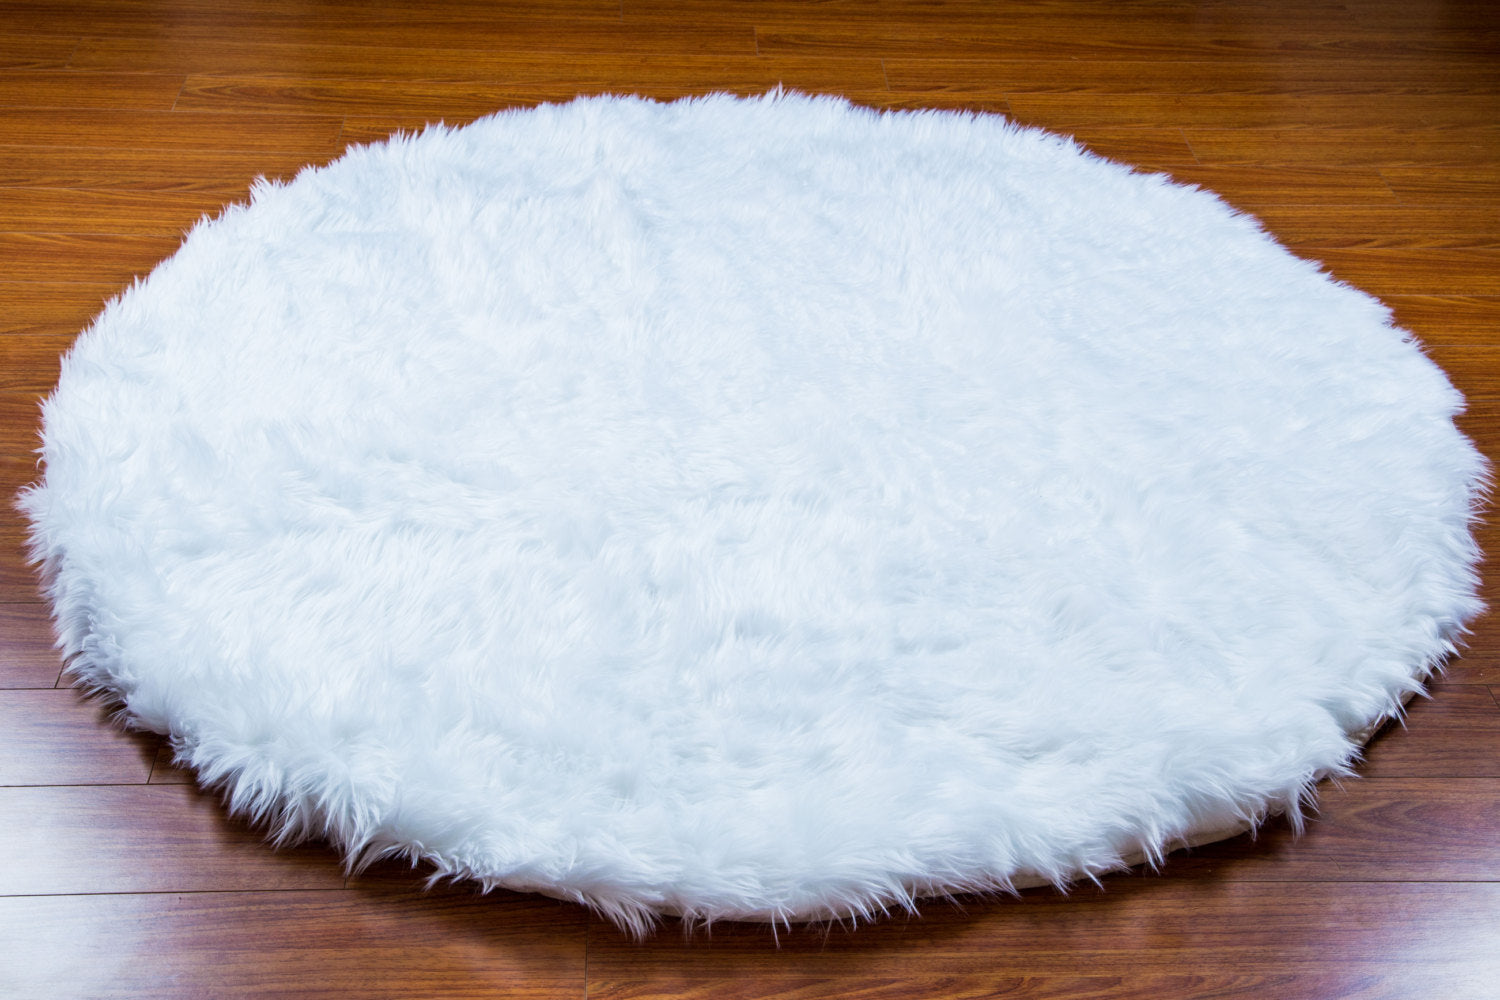 White Faux Shaggy Sheepskin Round 6' Diameter Area Rug || Home Decor